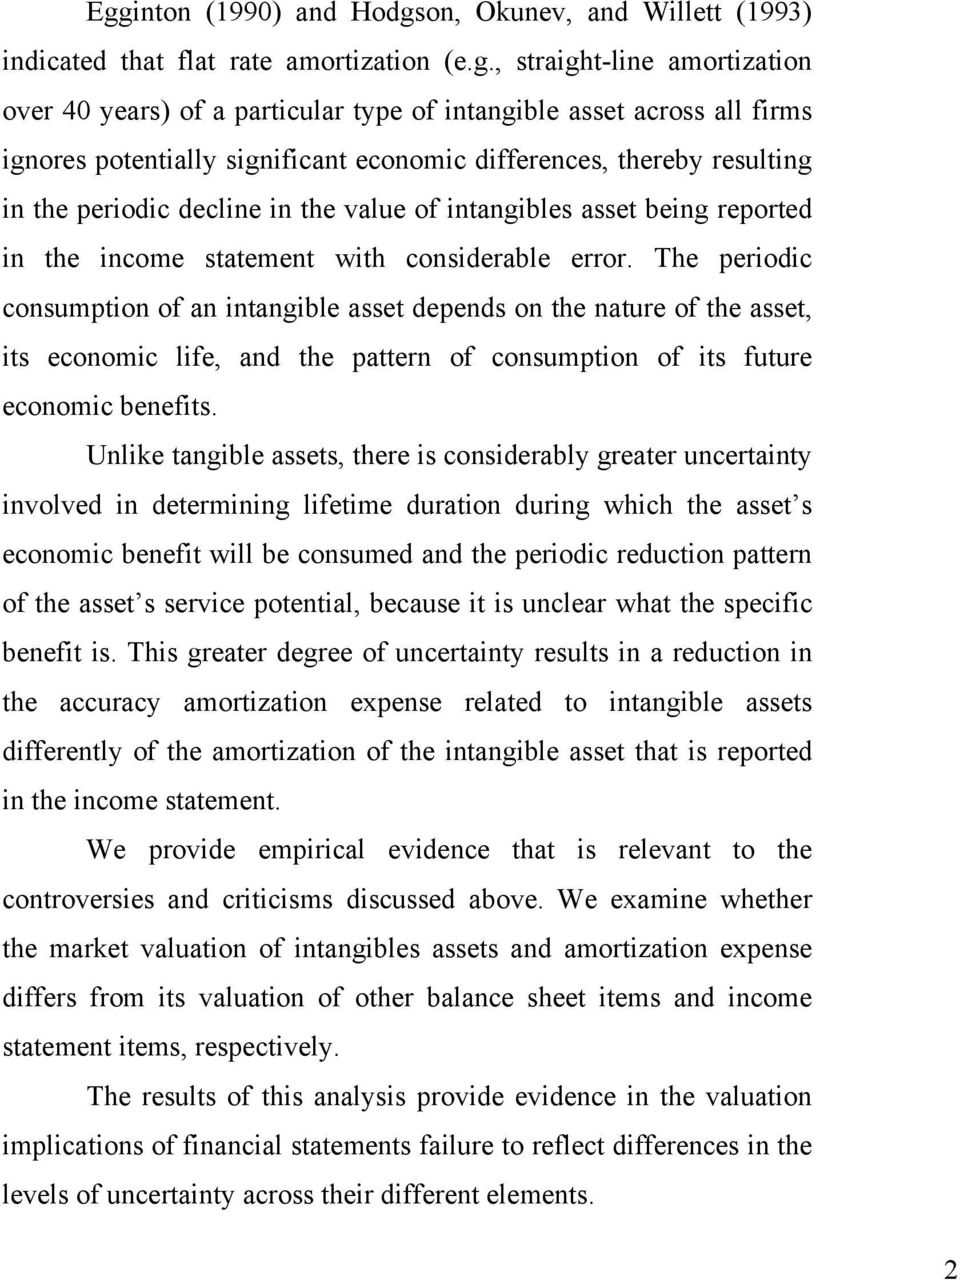 The periodic consumption of an intangible asset depends on the nature of the asset, its economic life, and the pattern of consumption of its future economic benefits.